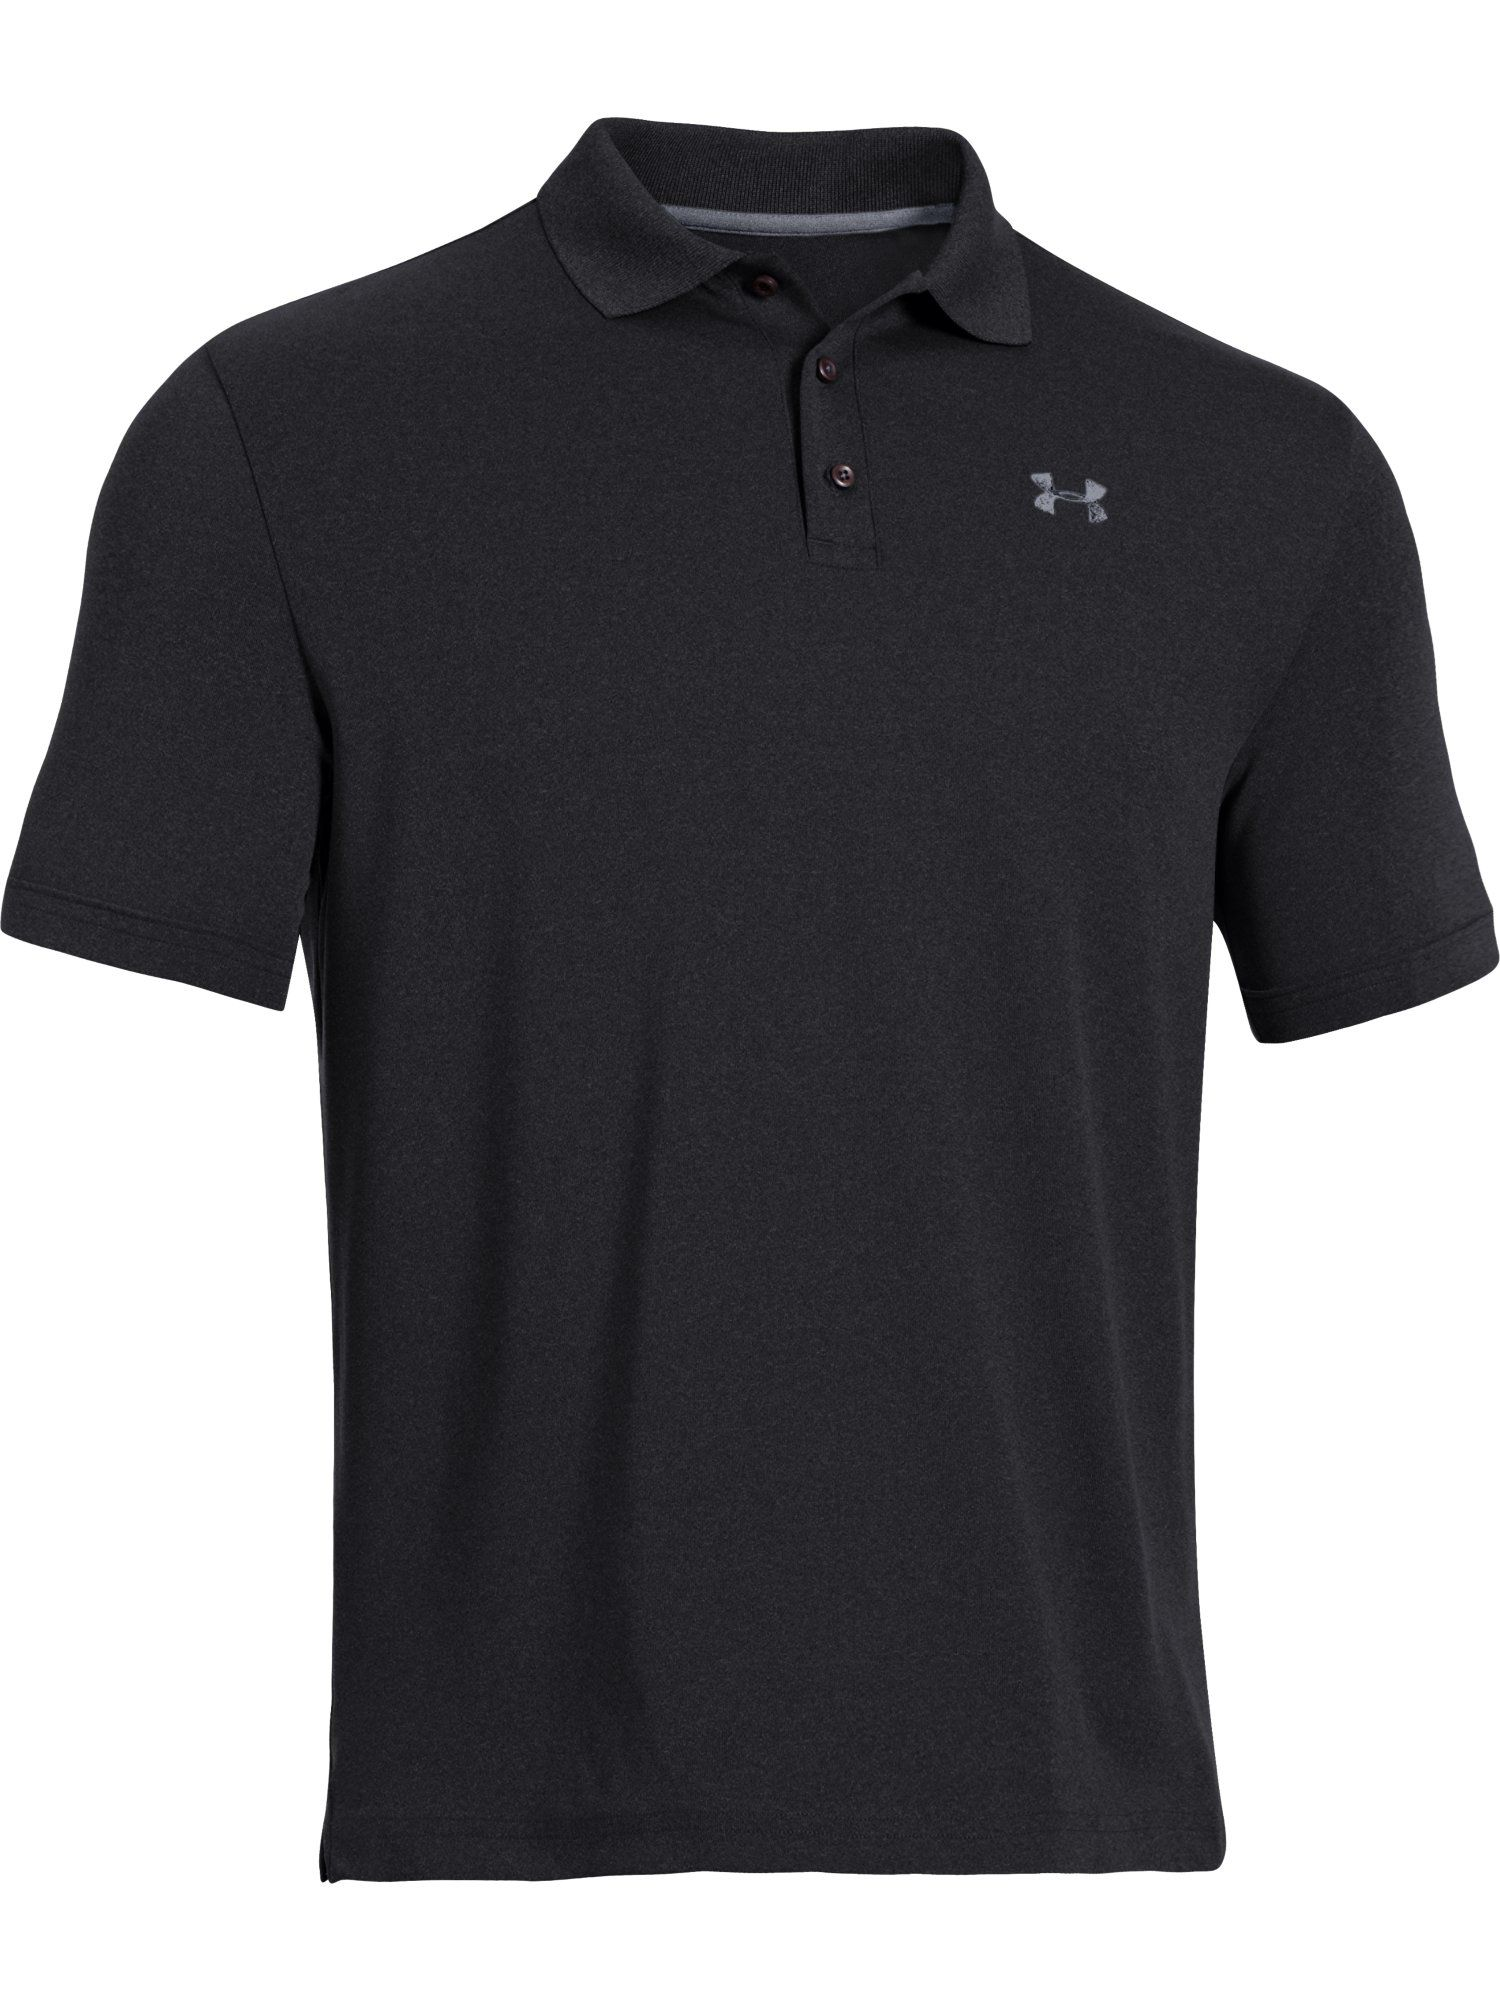 Men's Under Armour Performance Polo, Nearly Black